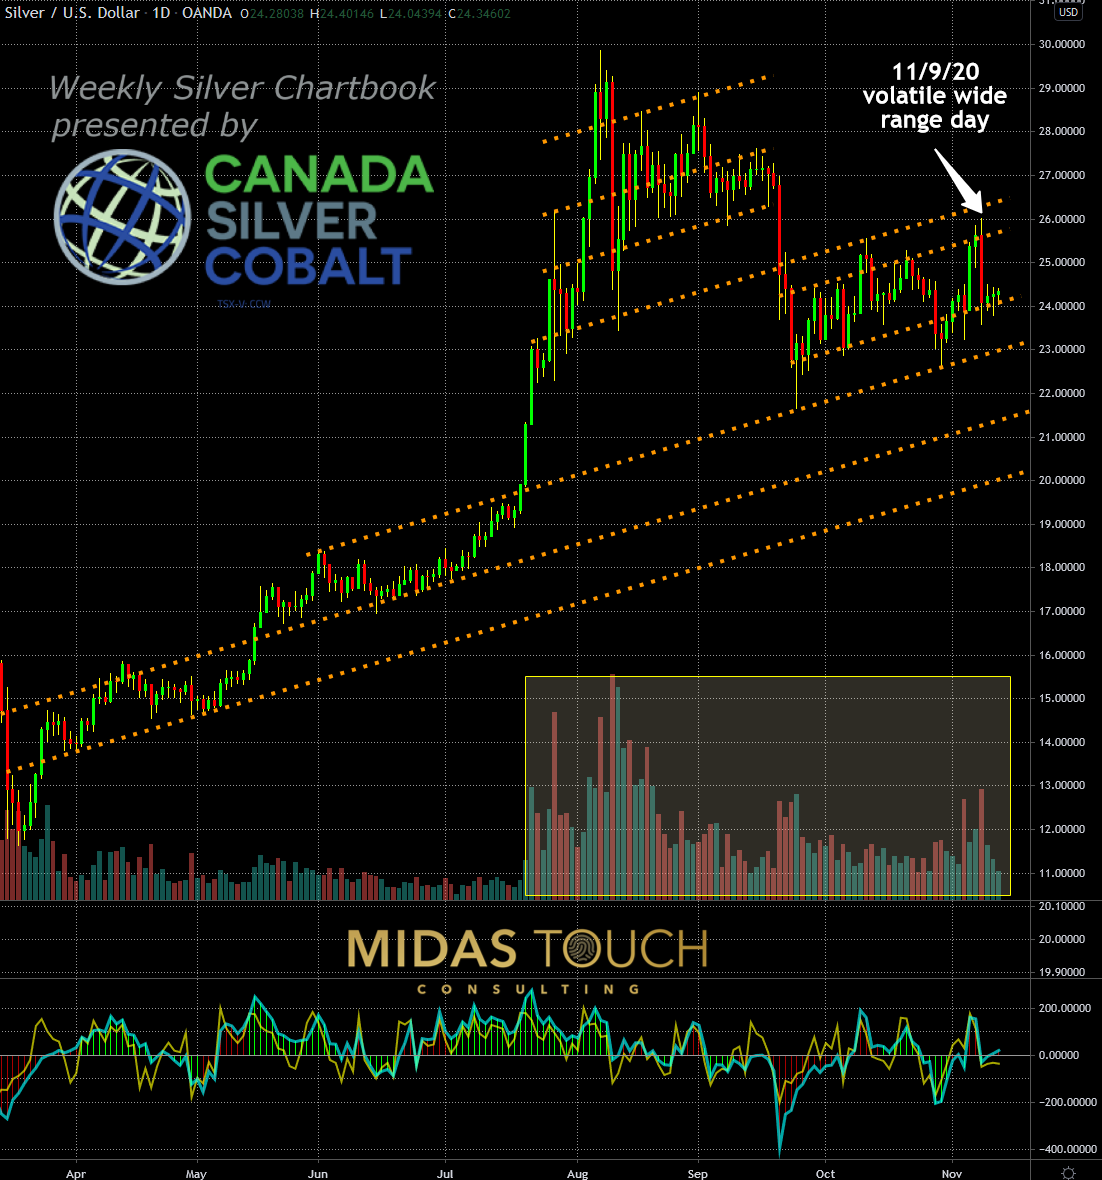 Silver in US Dollar, daily chart as of November 12th, 2020